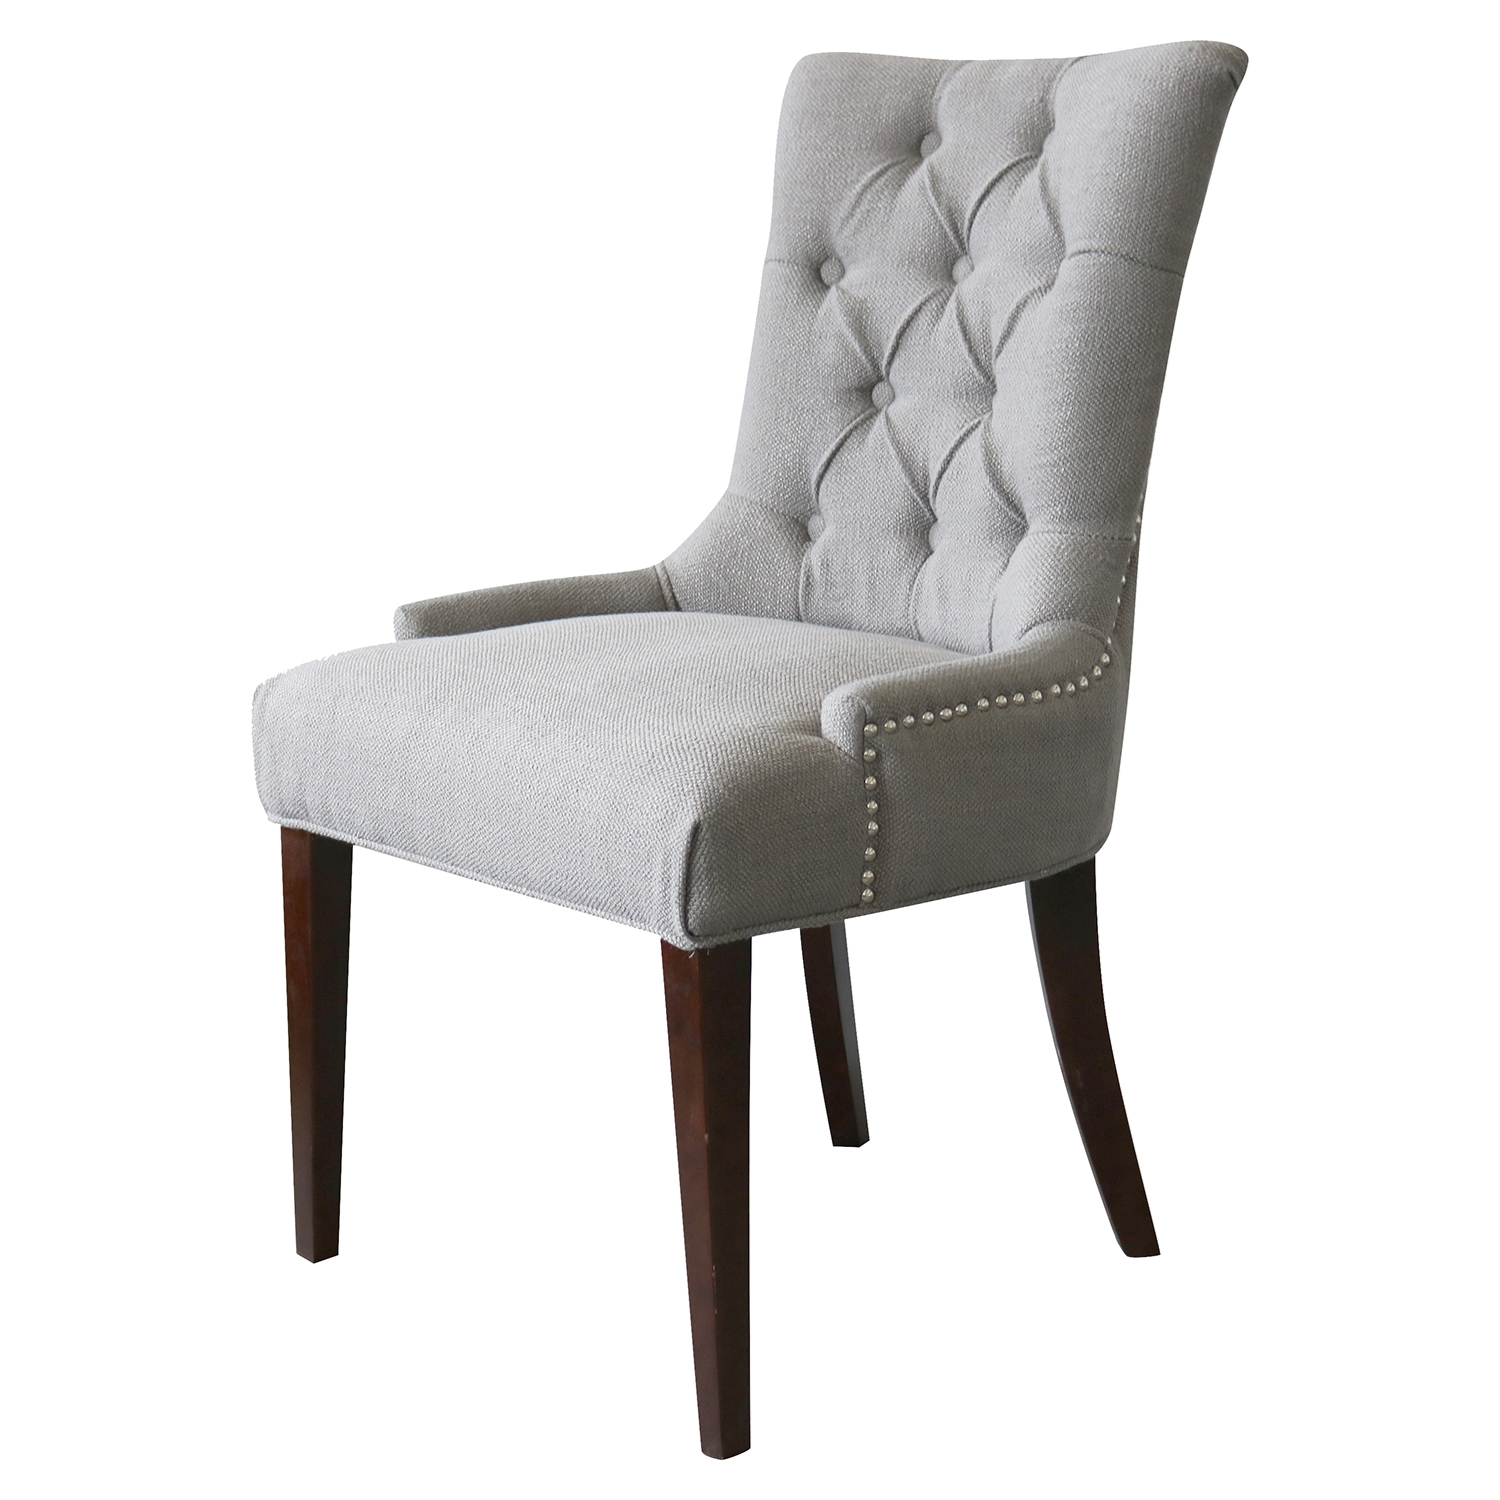 Madelyn Chair - Granite, Button Tufted